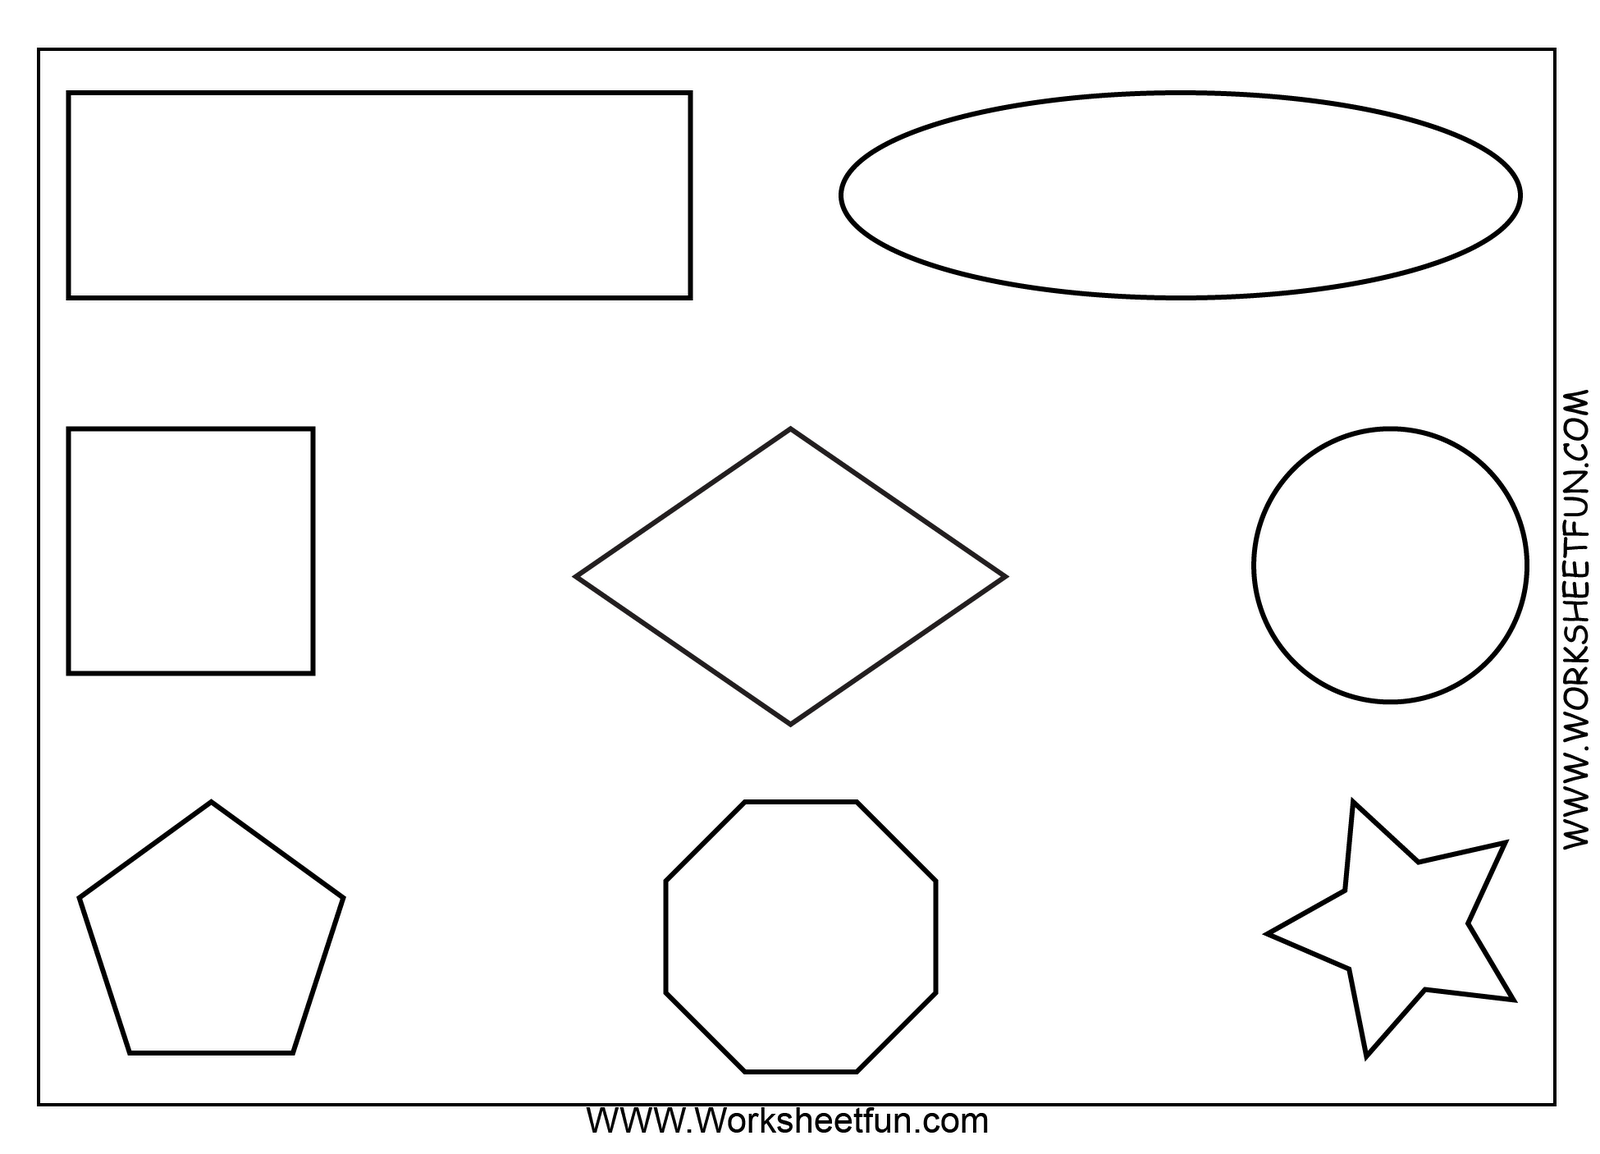 Free Printable Math Worksheets Use as an oral direction exam ex – Preschool Shape Worksheets